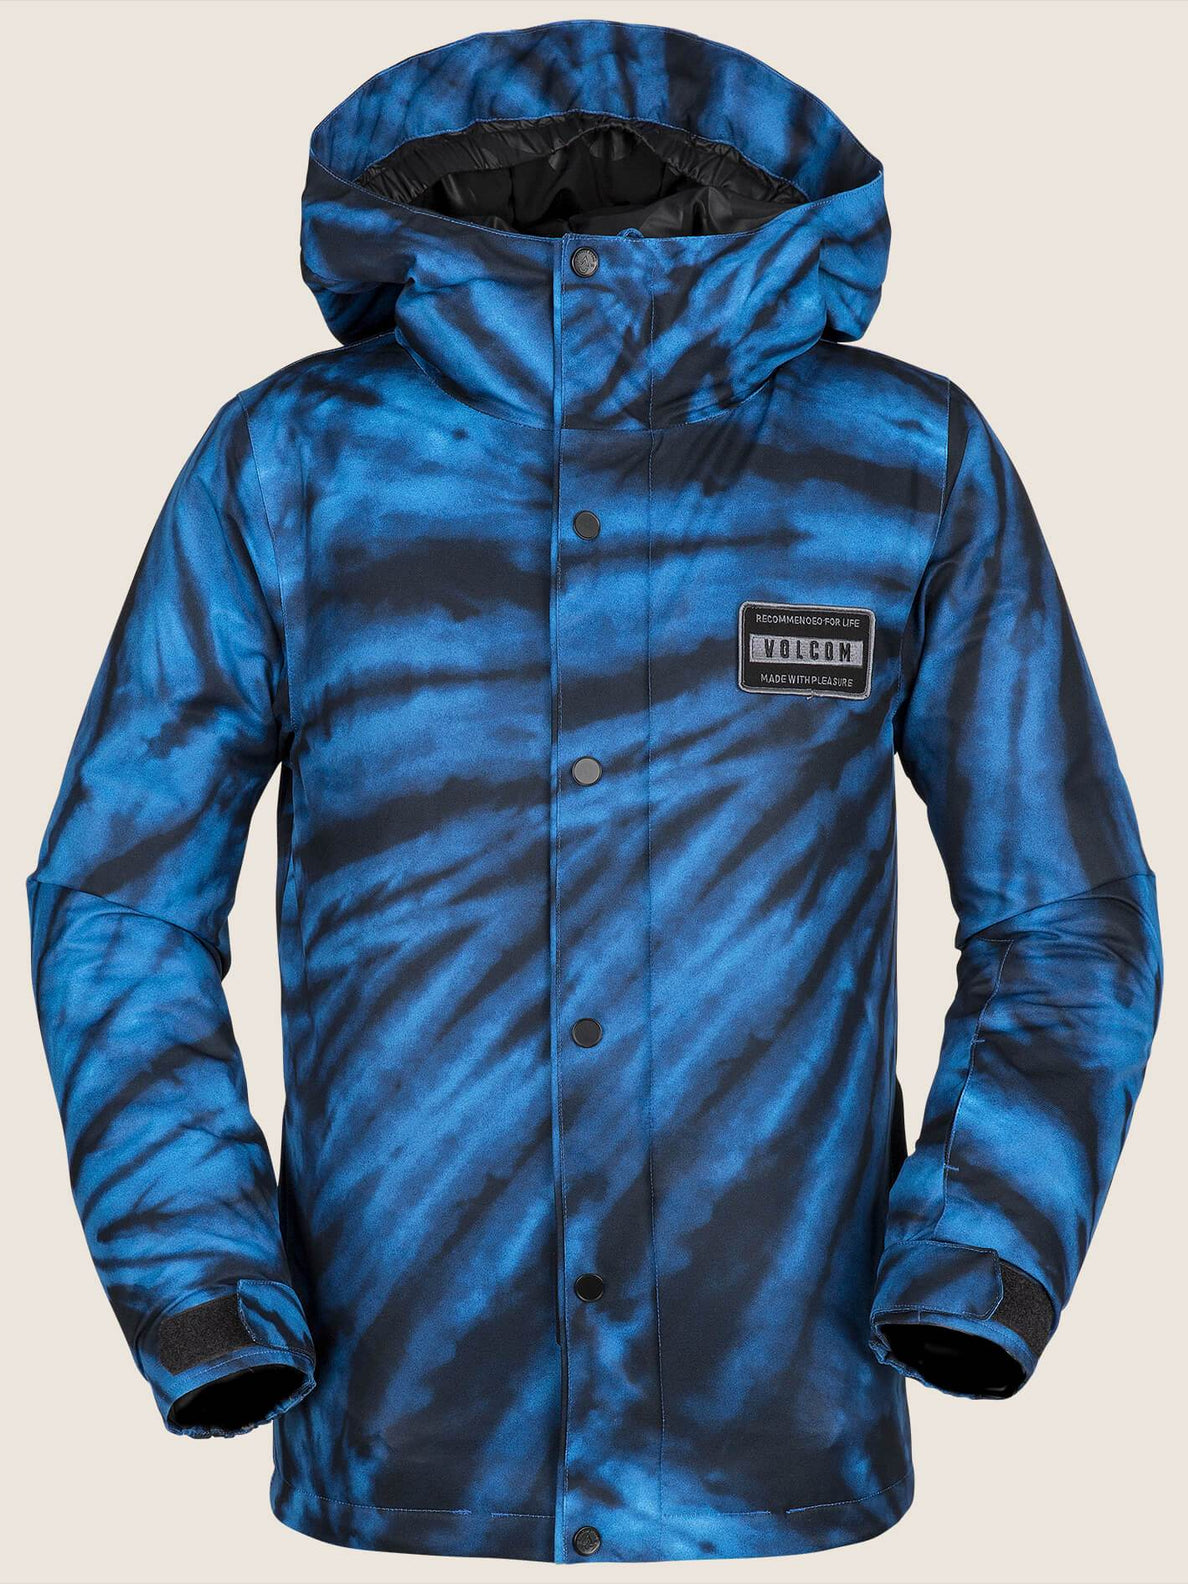 38851156f41a Ripley Insulated Jacket - Snowboarding